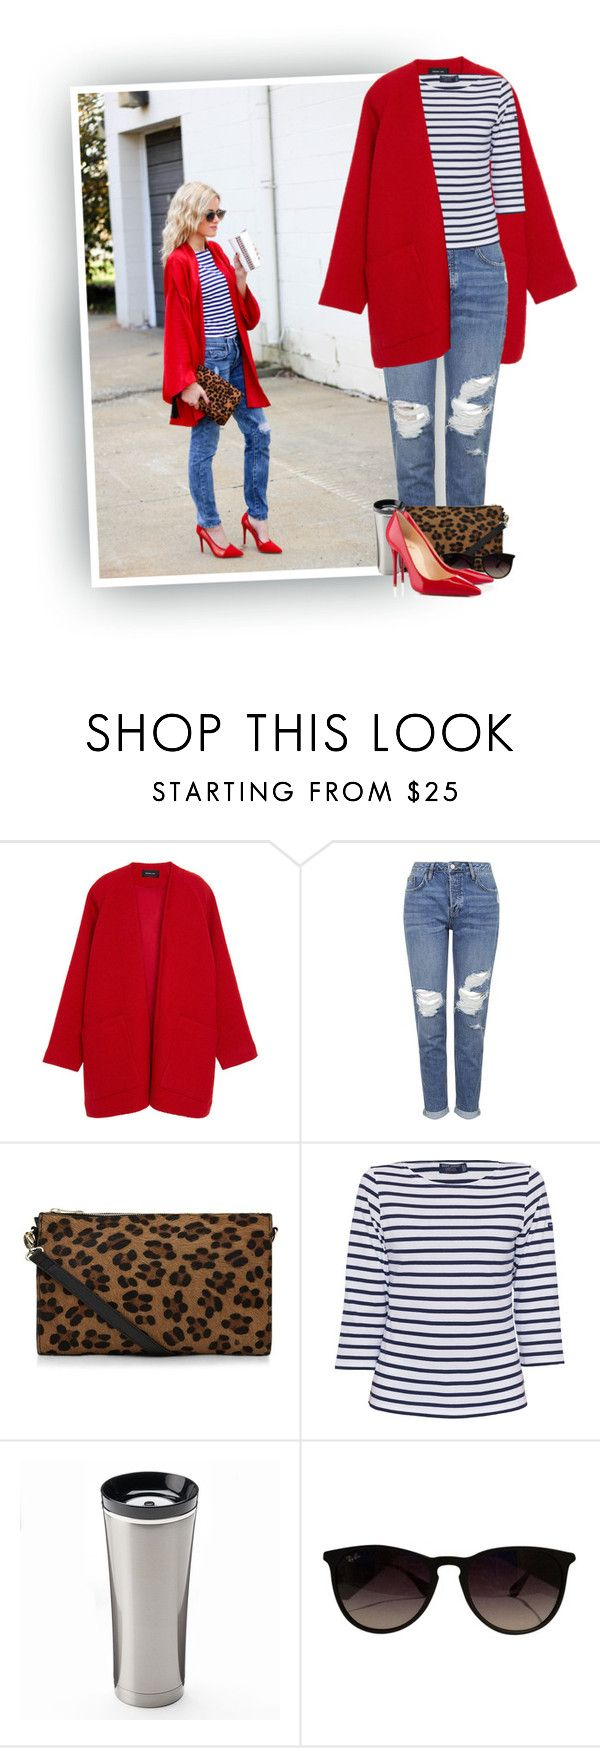 """Loving Him Was Red"" by hollowpoint-smile ❤ liked on Polyvore featuring Derek Lam, Topshop, Saint James, Thermos, Ray-Ban and Christian Louboutin"